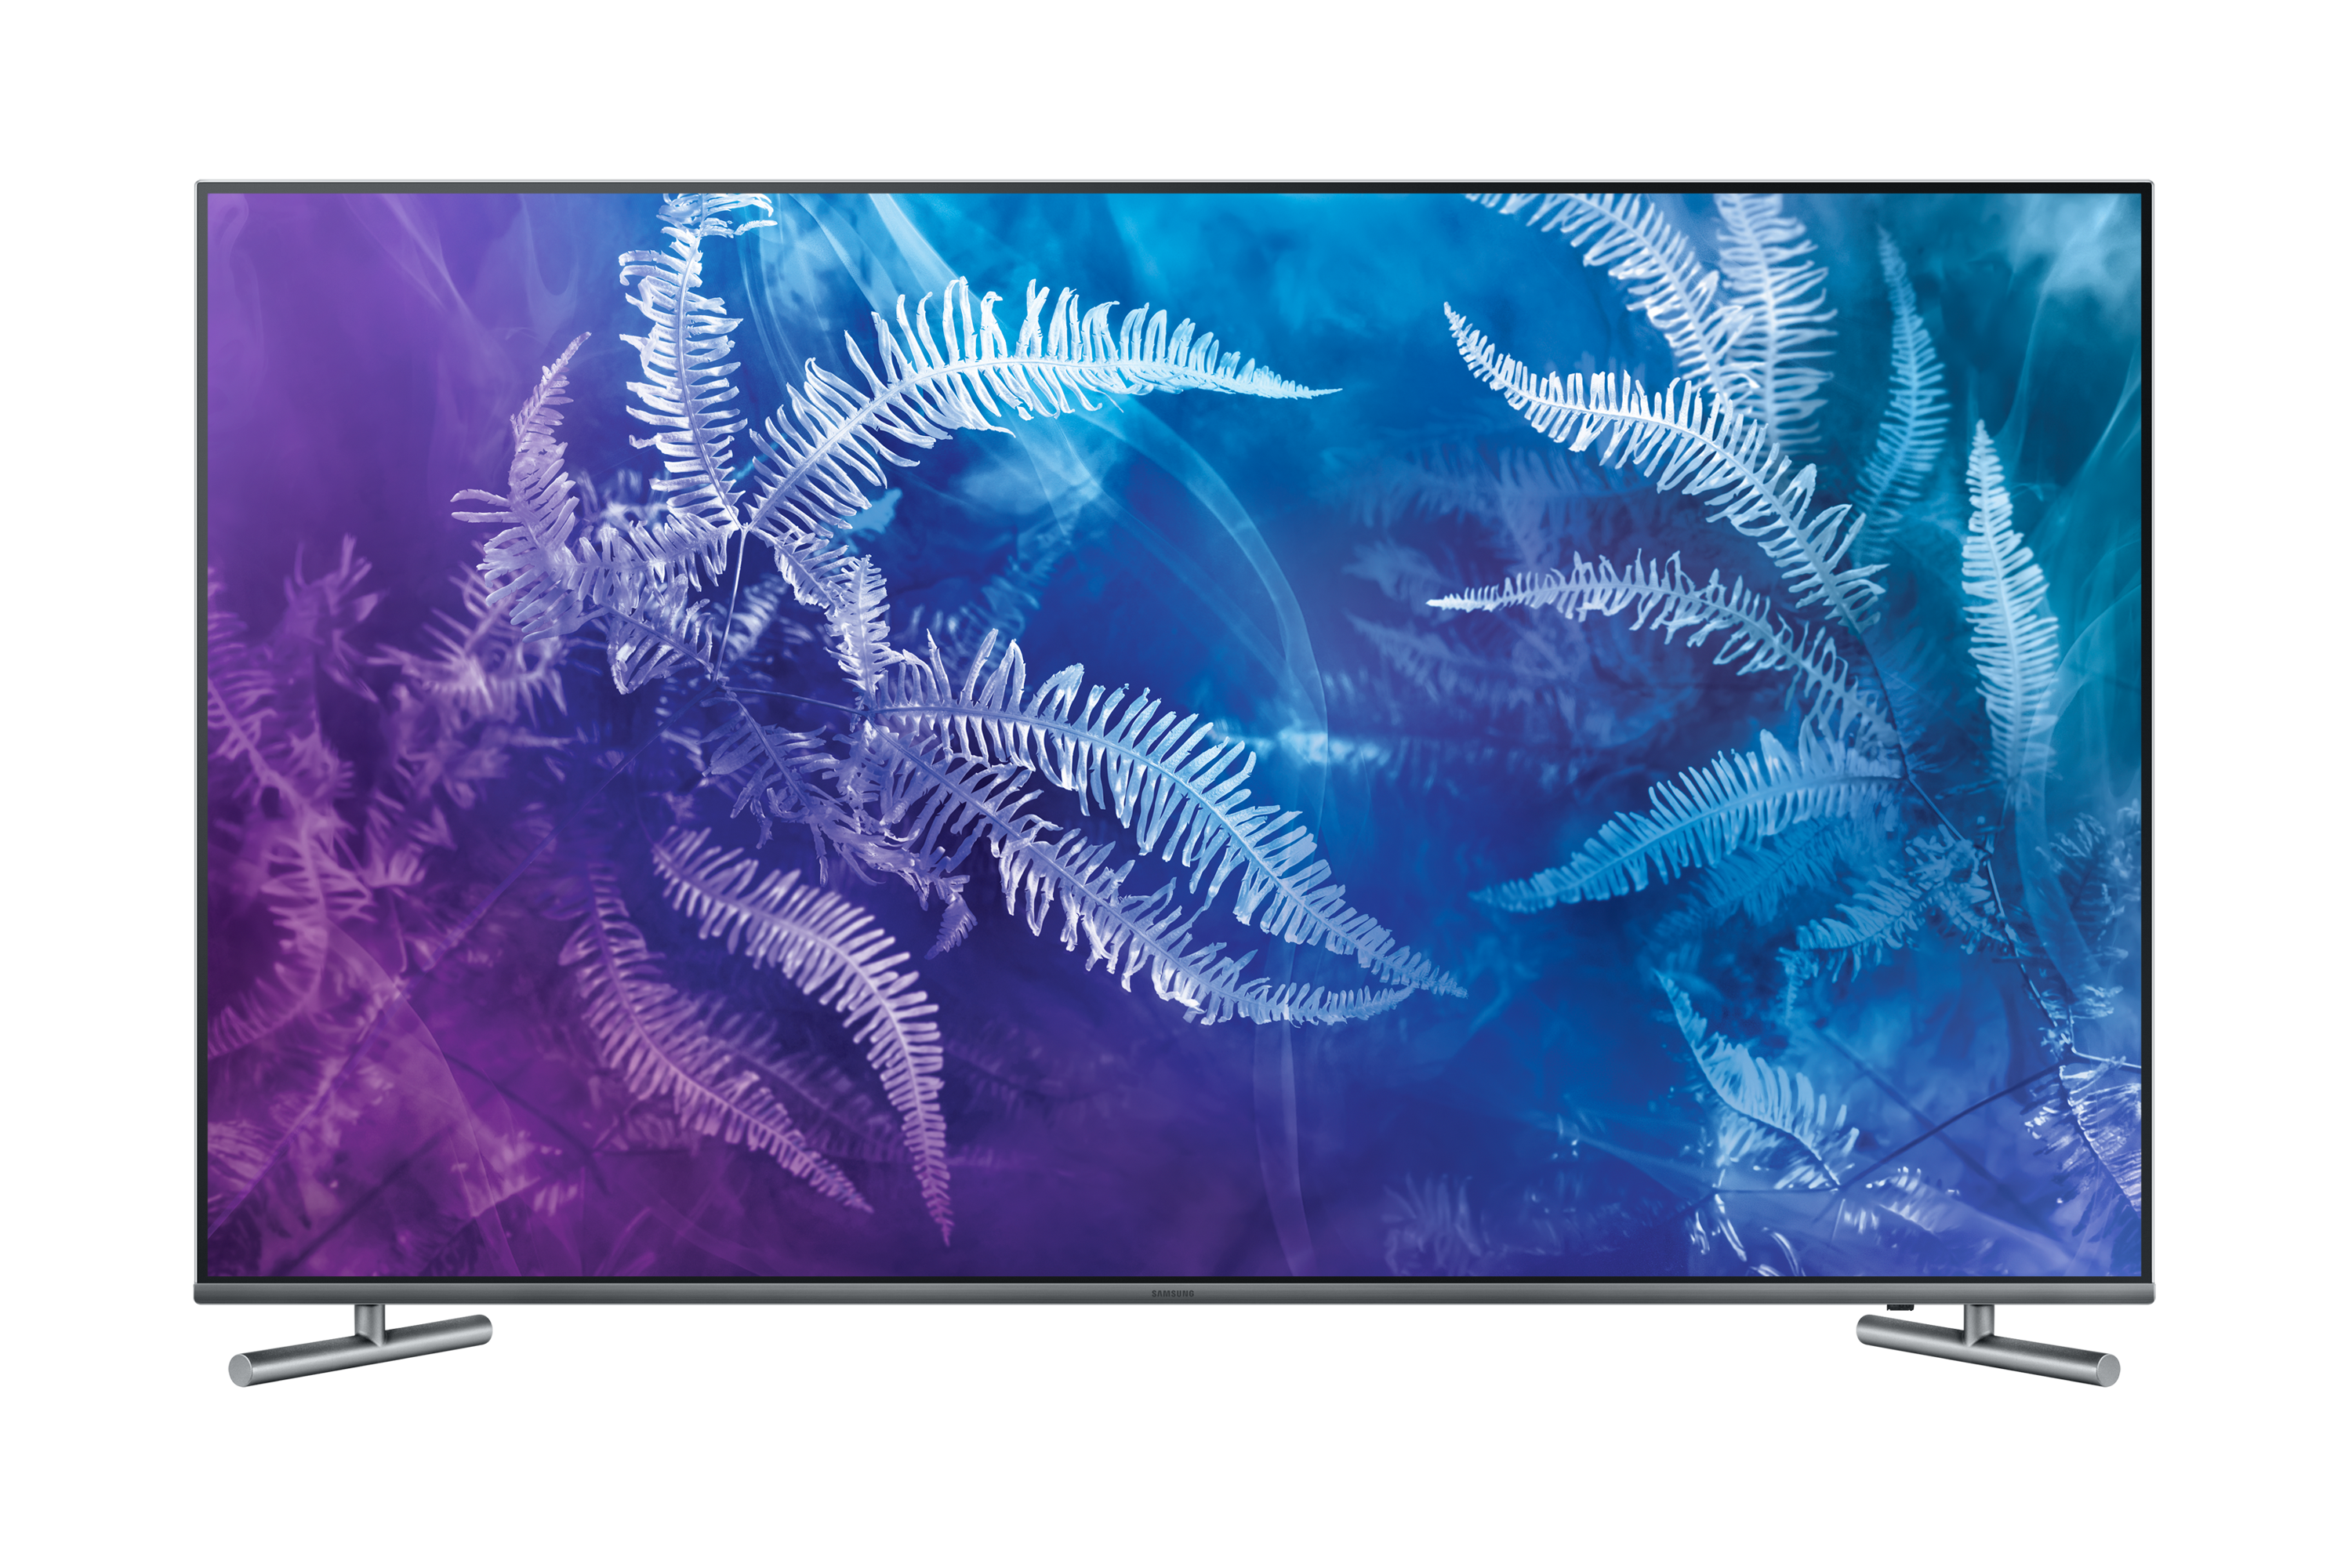 Smart TV Samsung QLED 4K Plano Q6FAMG Series Q